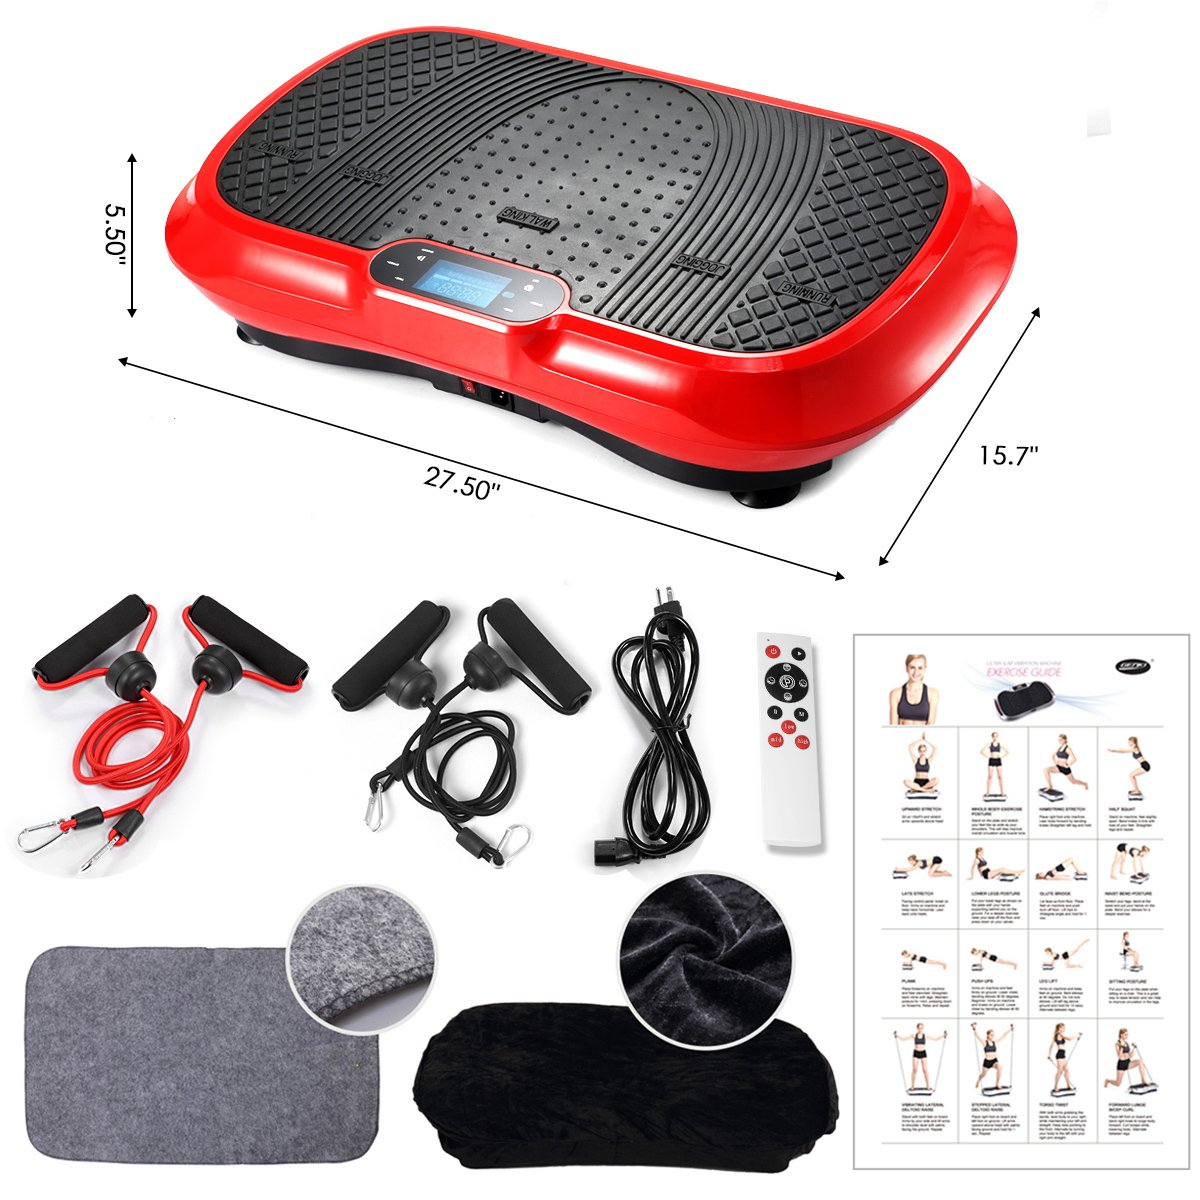 GENKI YD-1010B-R Ultra Slim Vibration Machine Plate Platform Whole Body Shaper Trainer Exercise Red by GENKI (Image #6)